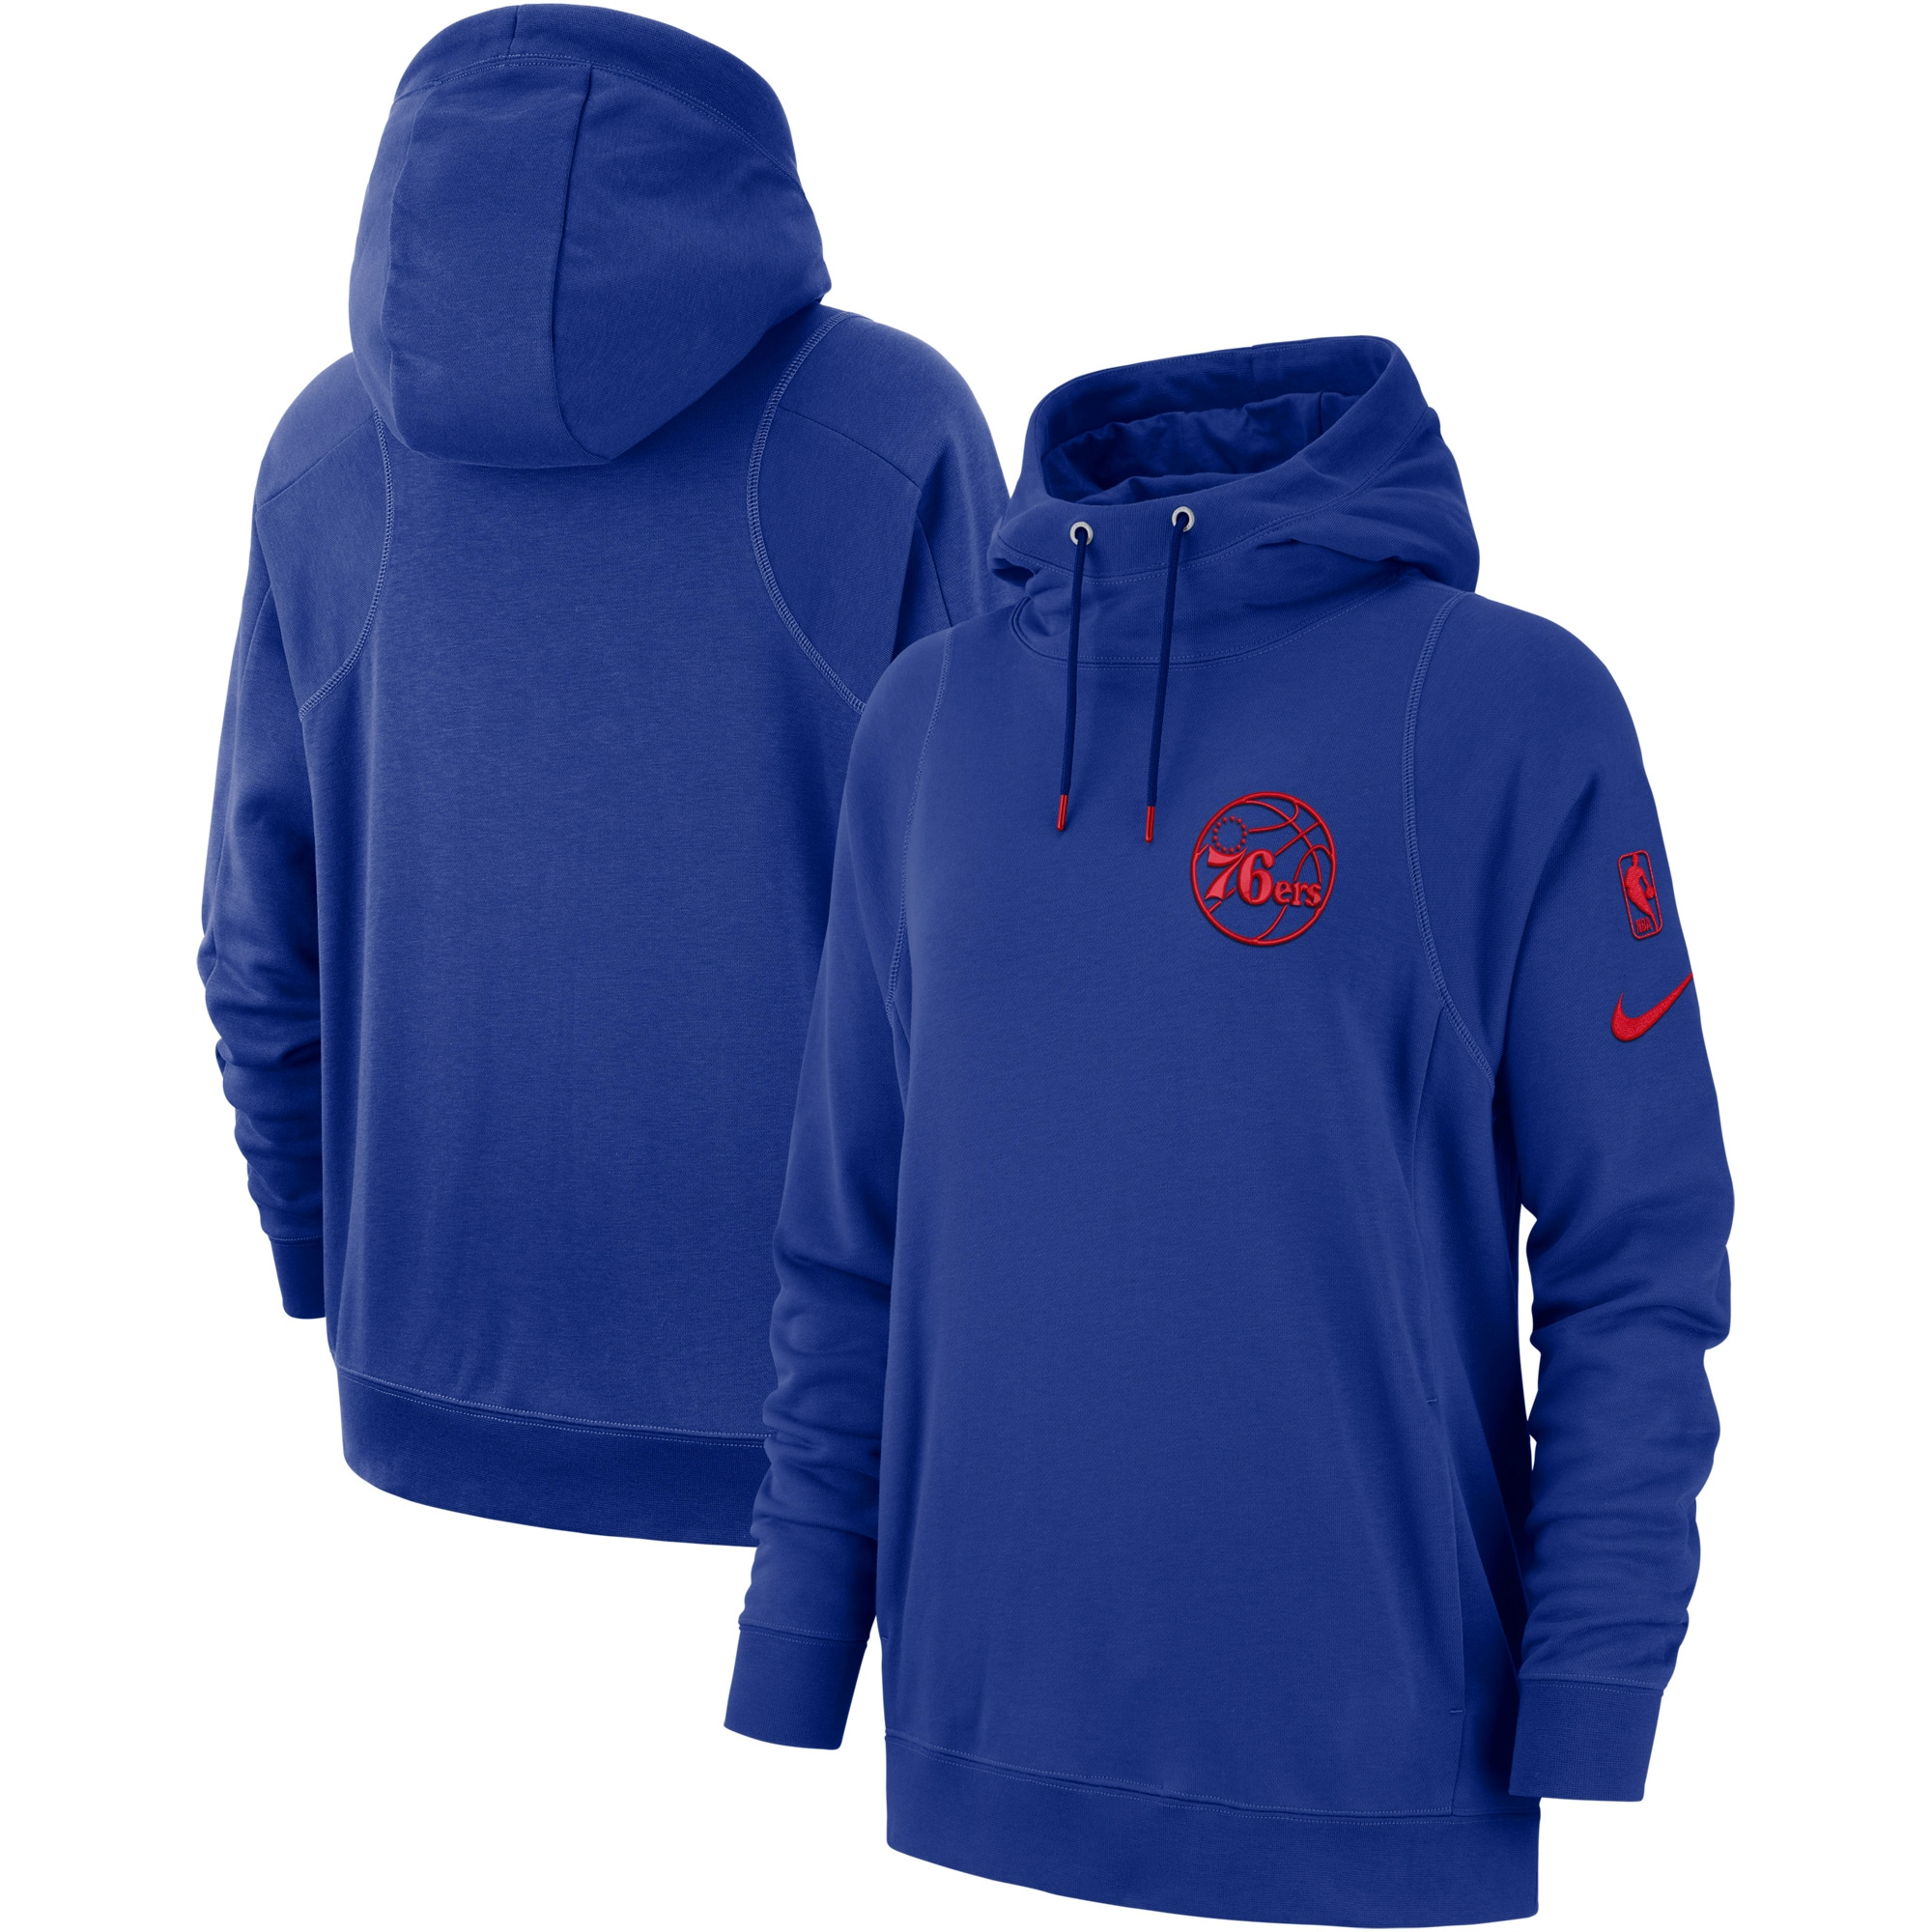 Philadelphia 76ers Nike Women's Courtside French Terry Pullover Hoodie - Royal